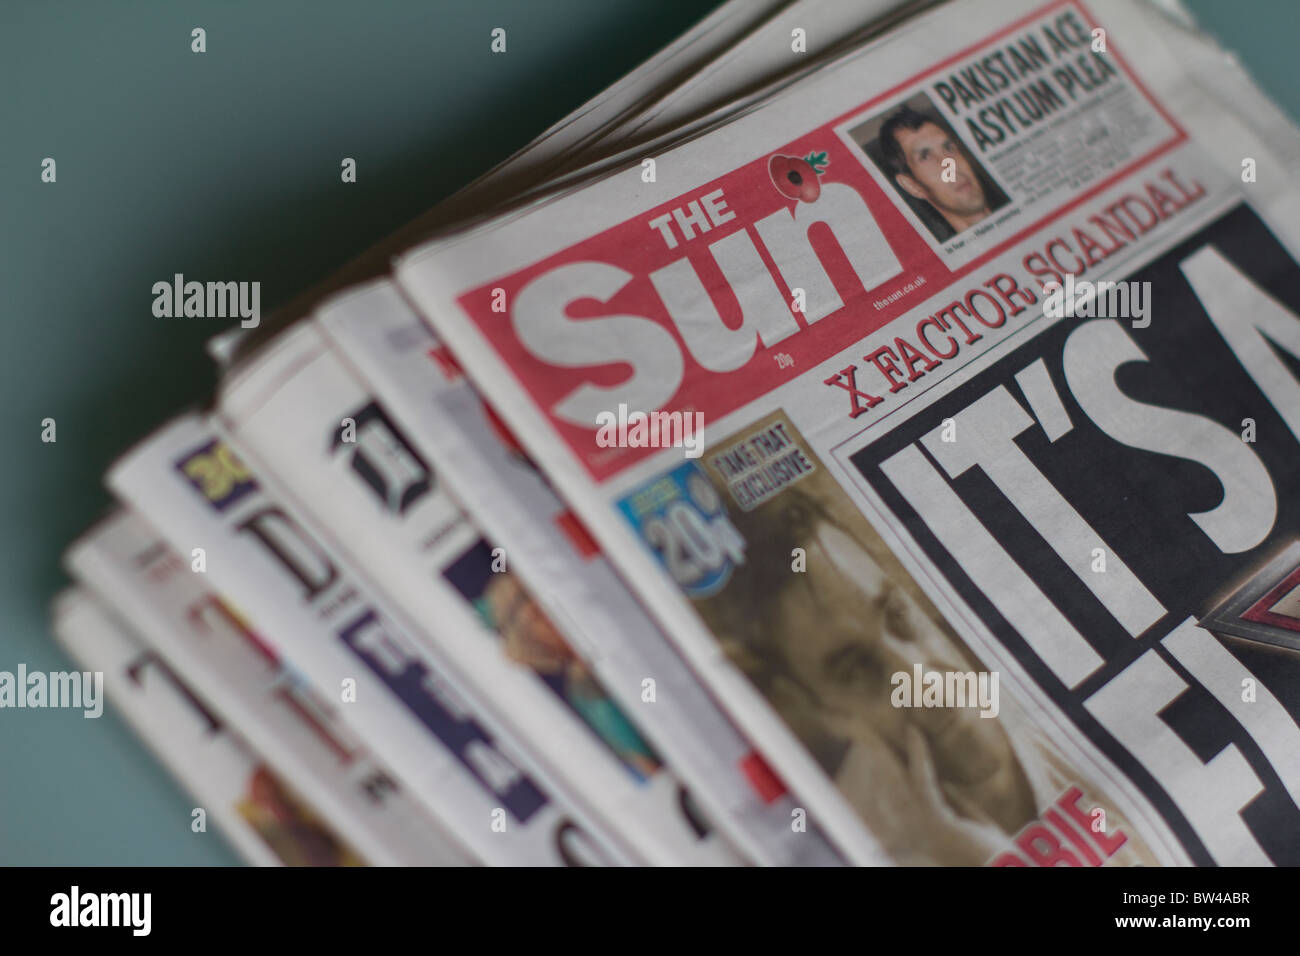 Daily UK tabloid newspaper, the sun, with other popular uk tabloids - Stock Image